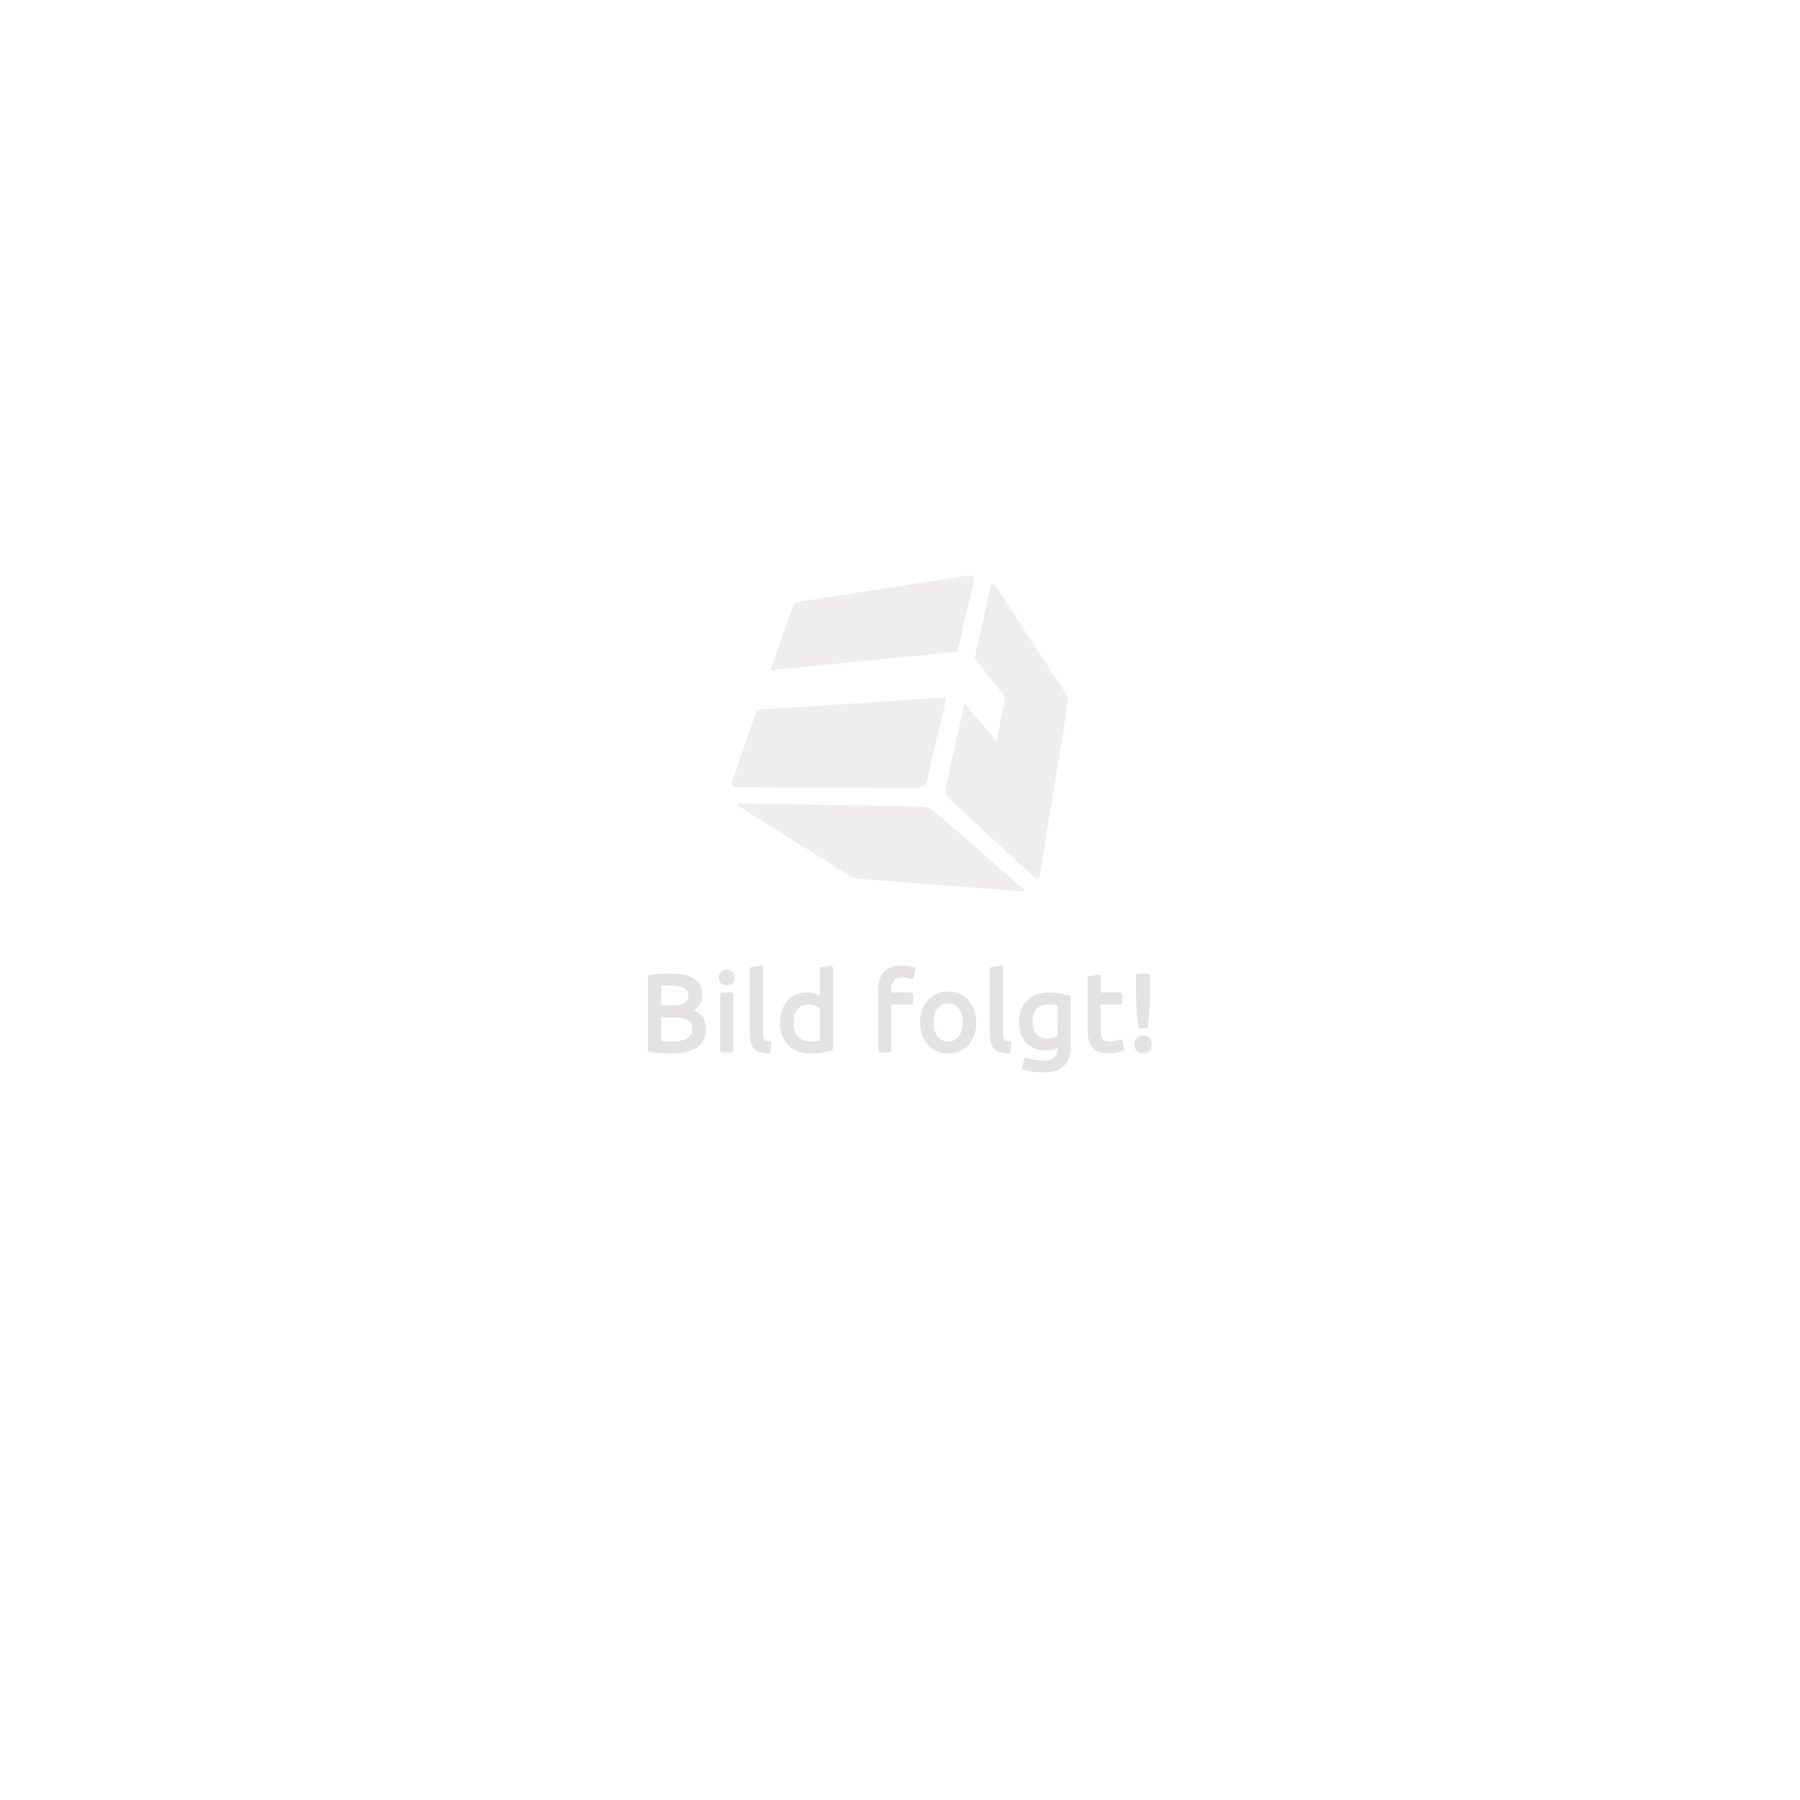 Lot de 3 tablettes murales LUISA